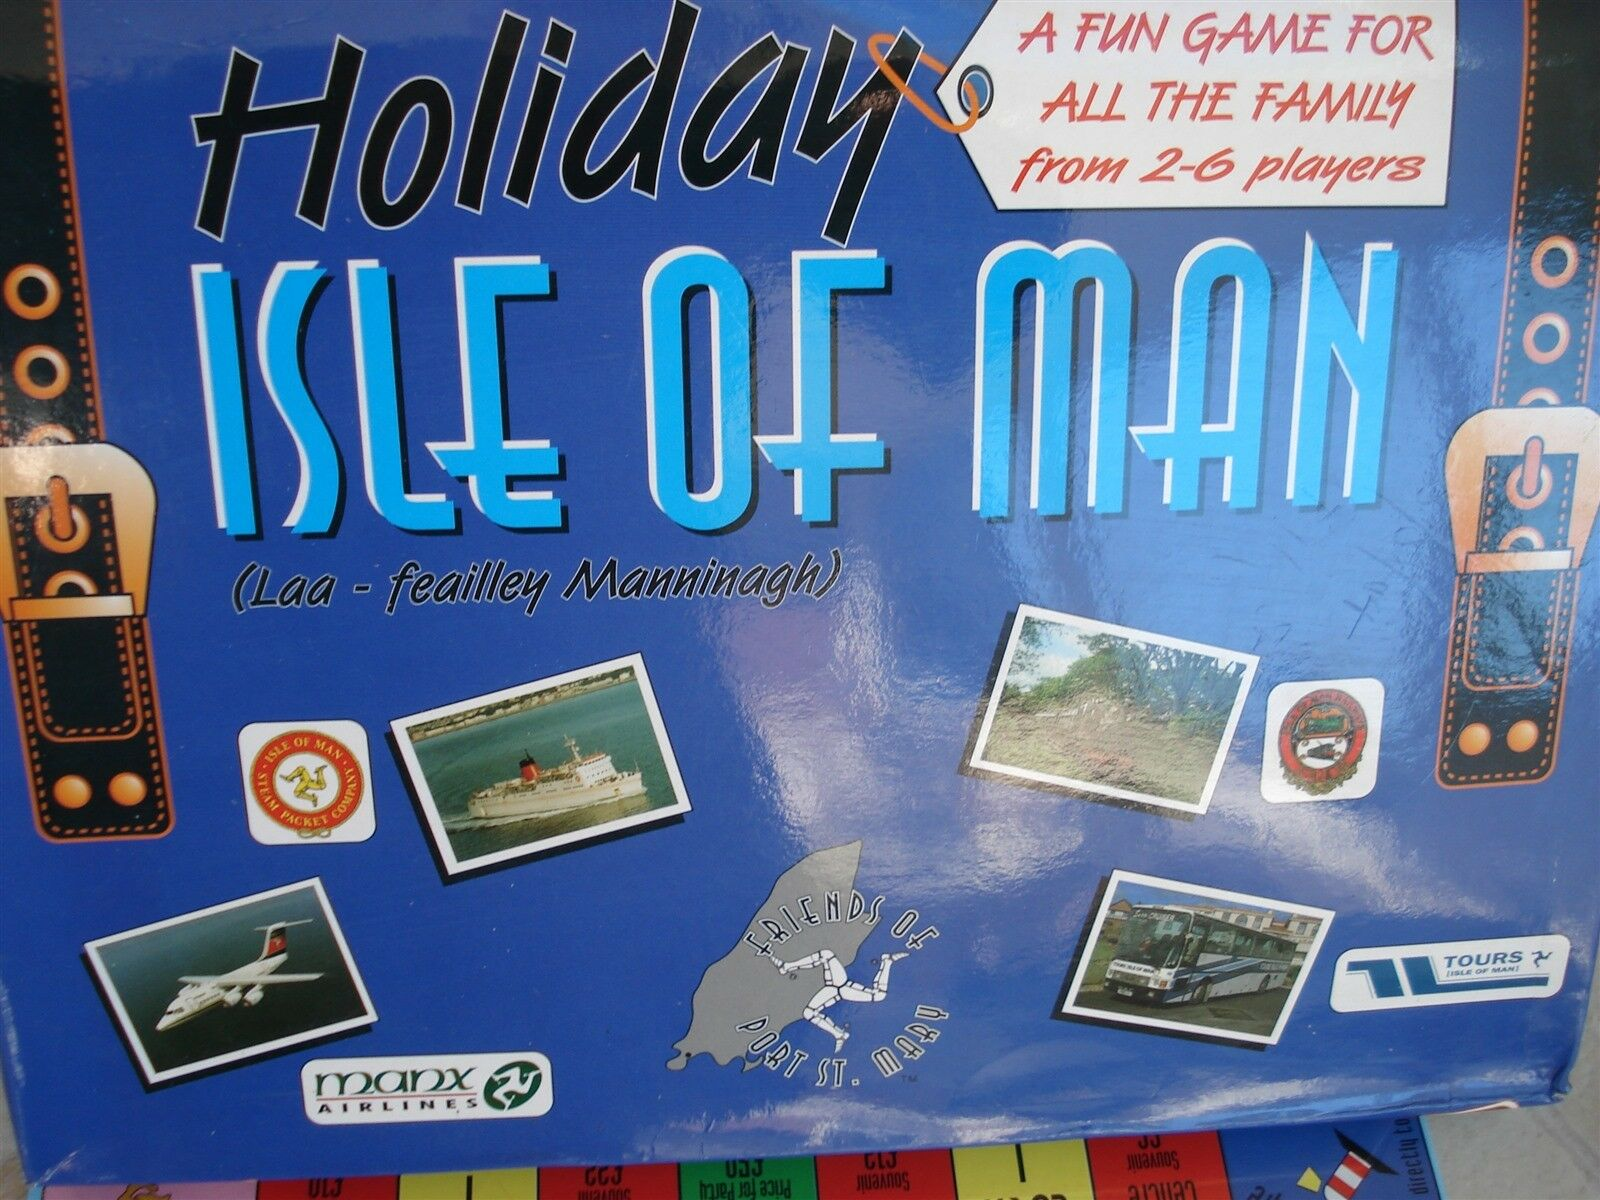 HOLIDAY ISLE OF MAN GAME - ISLE OF MAN GAME - 100% - 1996 - RARE - LOOKS GREAT